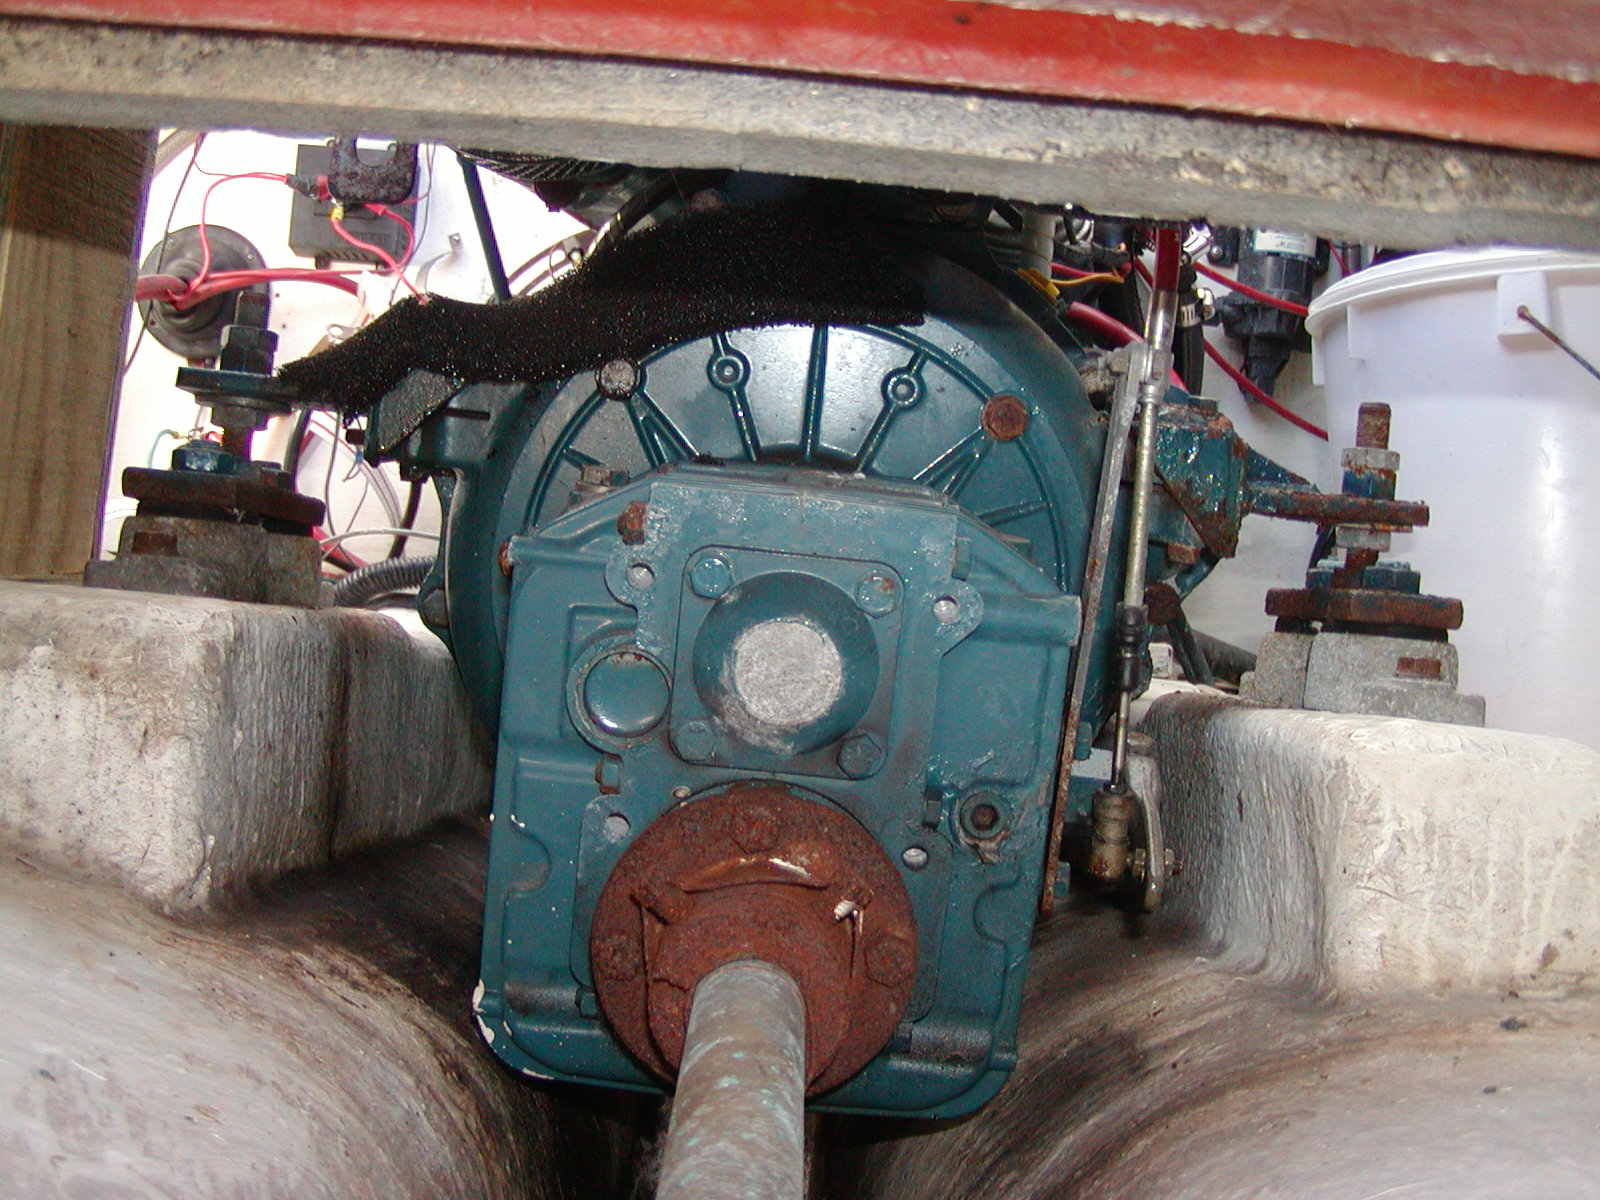 Nissandiesel Forums View Topic Marine Ld28s Nissan Ld28 Diesel Engine Schematics We Dont Get To See Much Of The In Other Than Maxima Dress